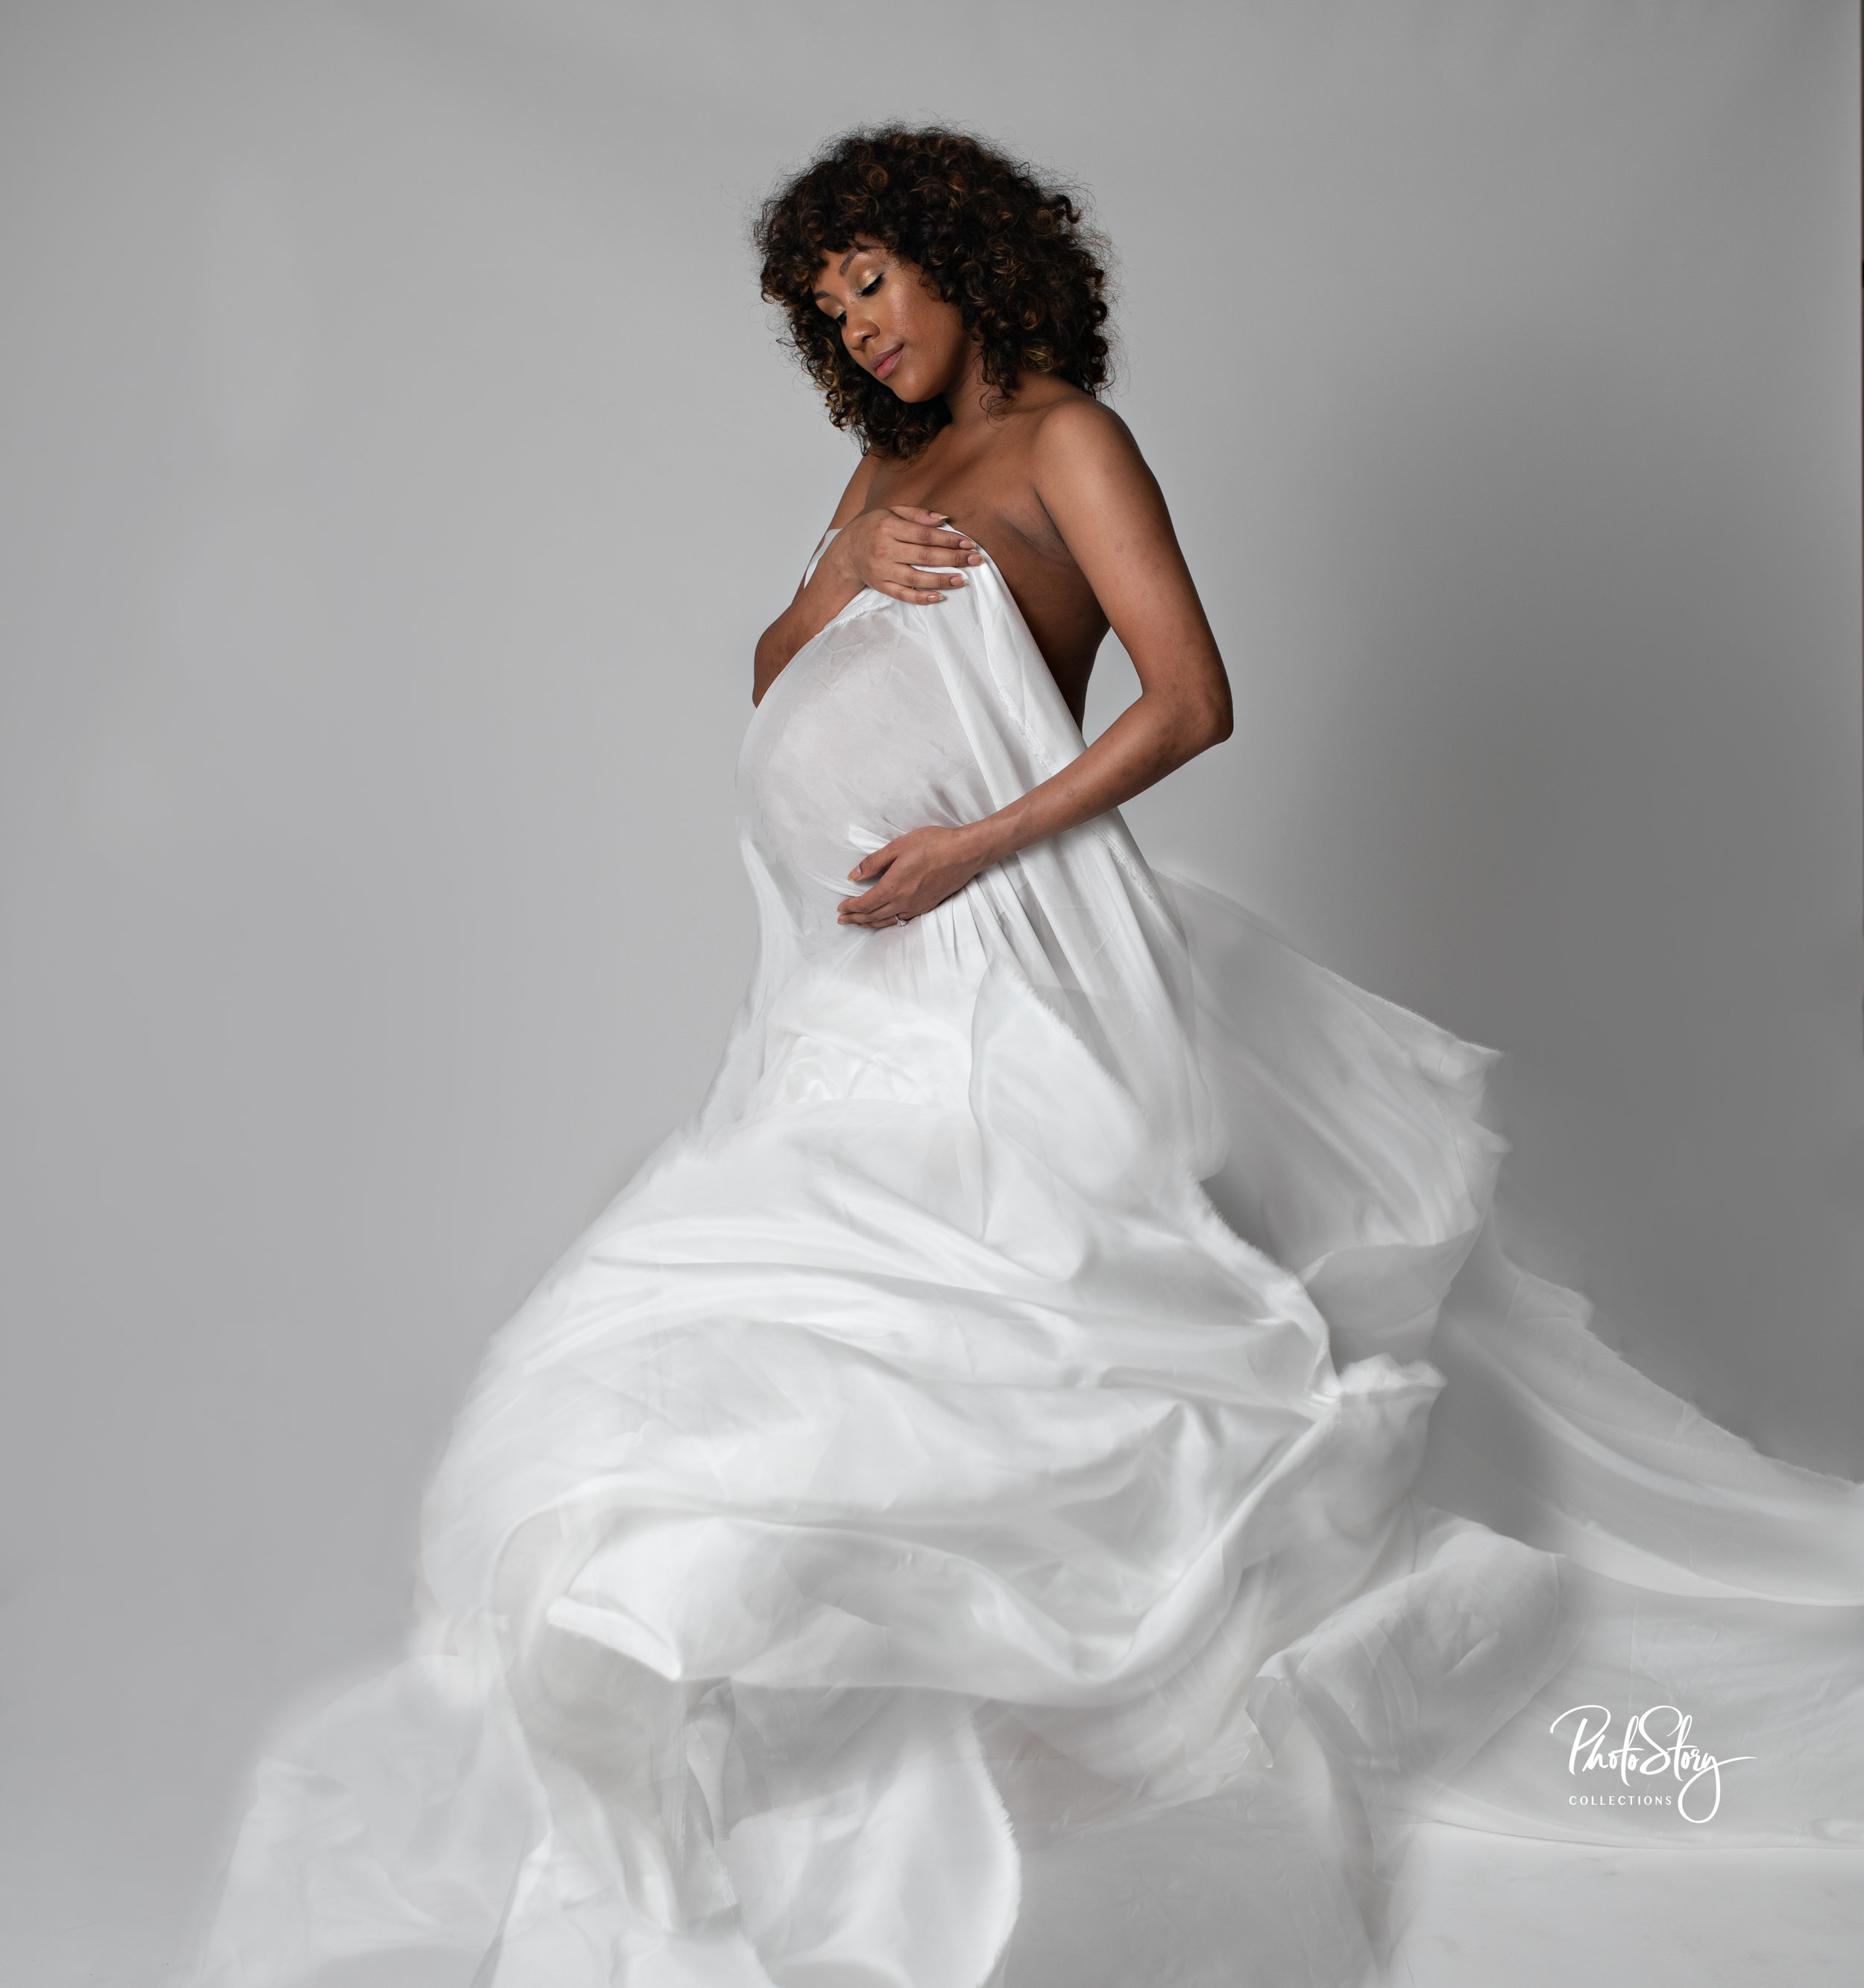 Maternity-Session-Alexis-052019-27.jpg